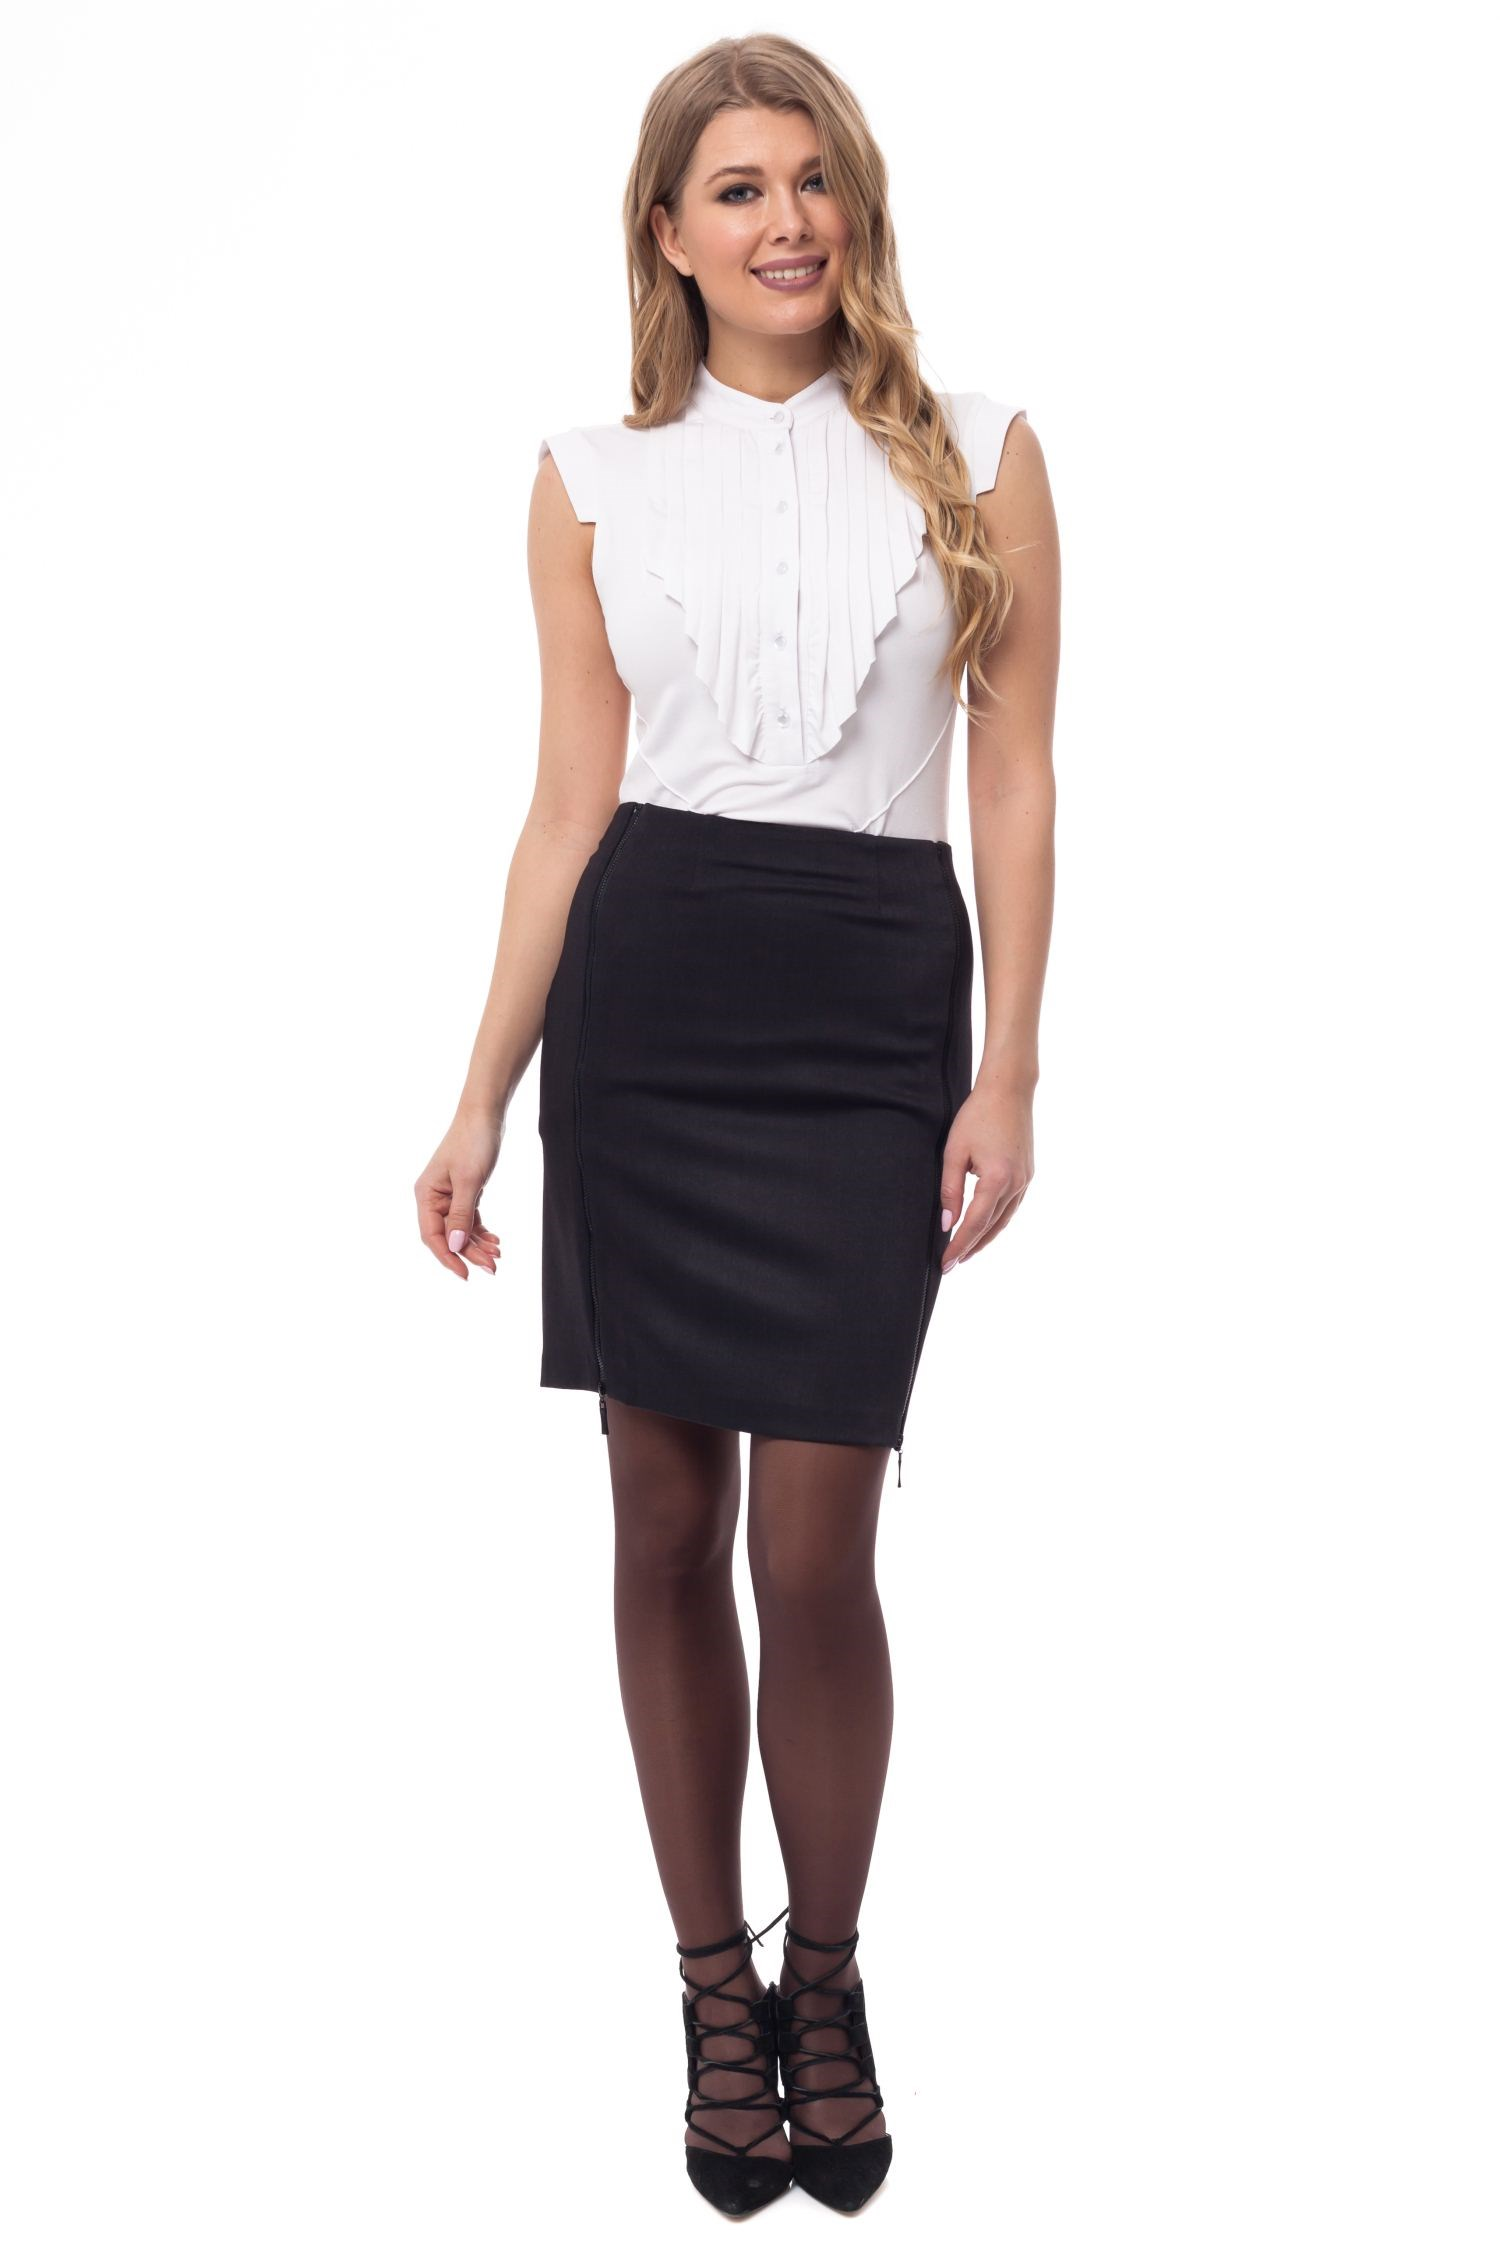 Pencil skirt with decorative zippers. skirt with slit